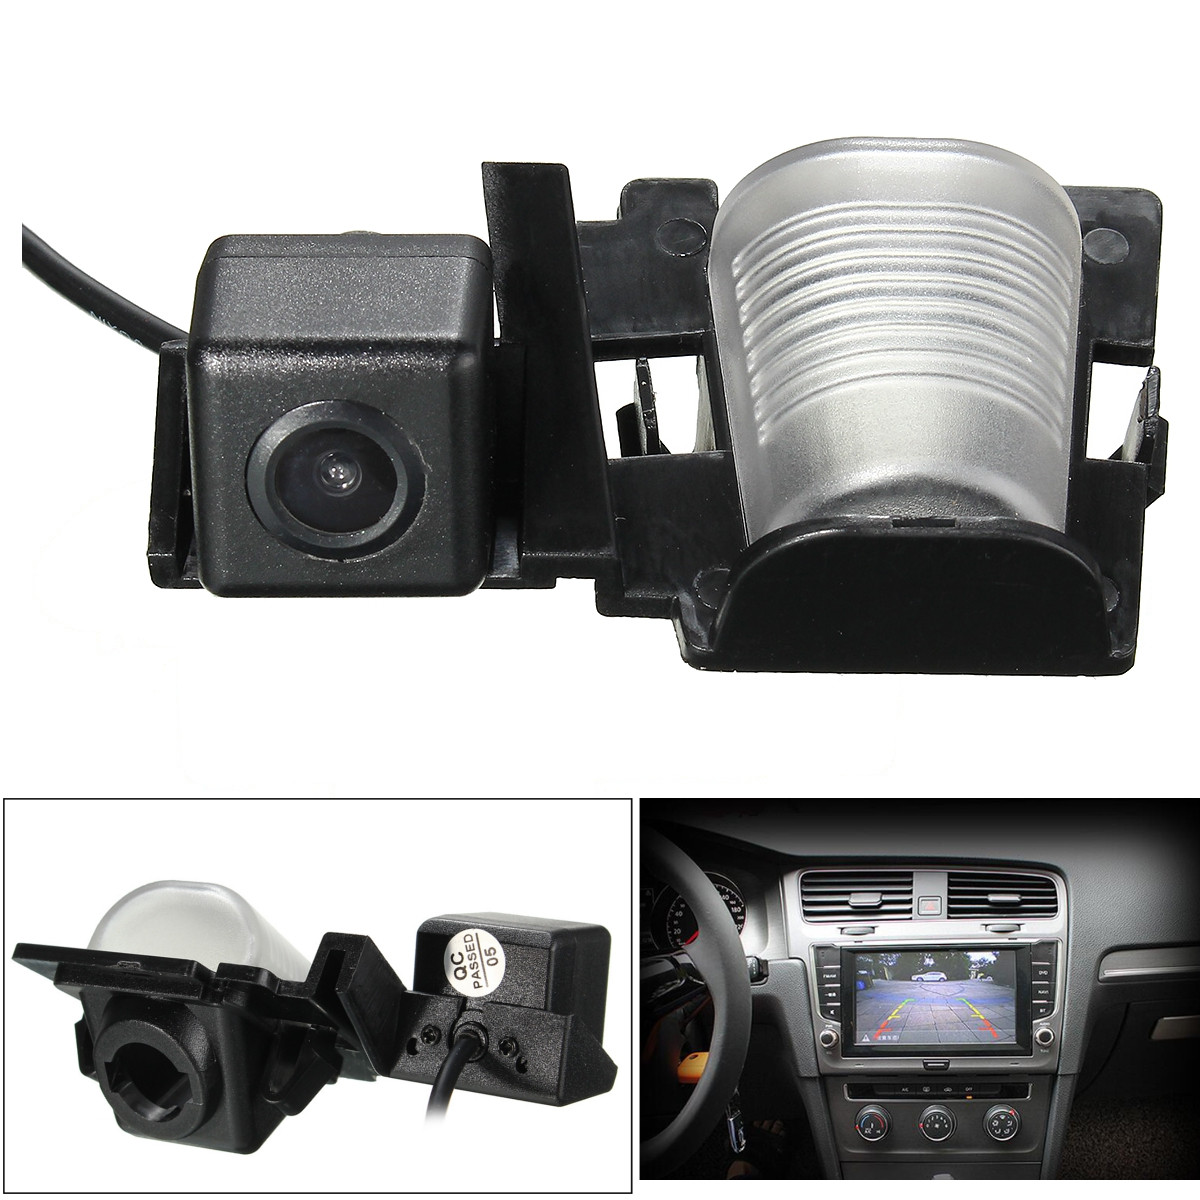 Car Rear View Camera Reverse Parking Backup Camera 120 Degree Angle CCD HD Waterproof For JEEP/Wrangler 2012 2013